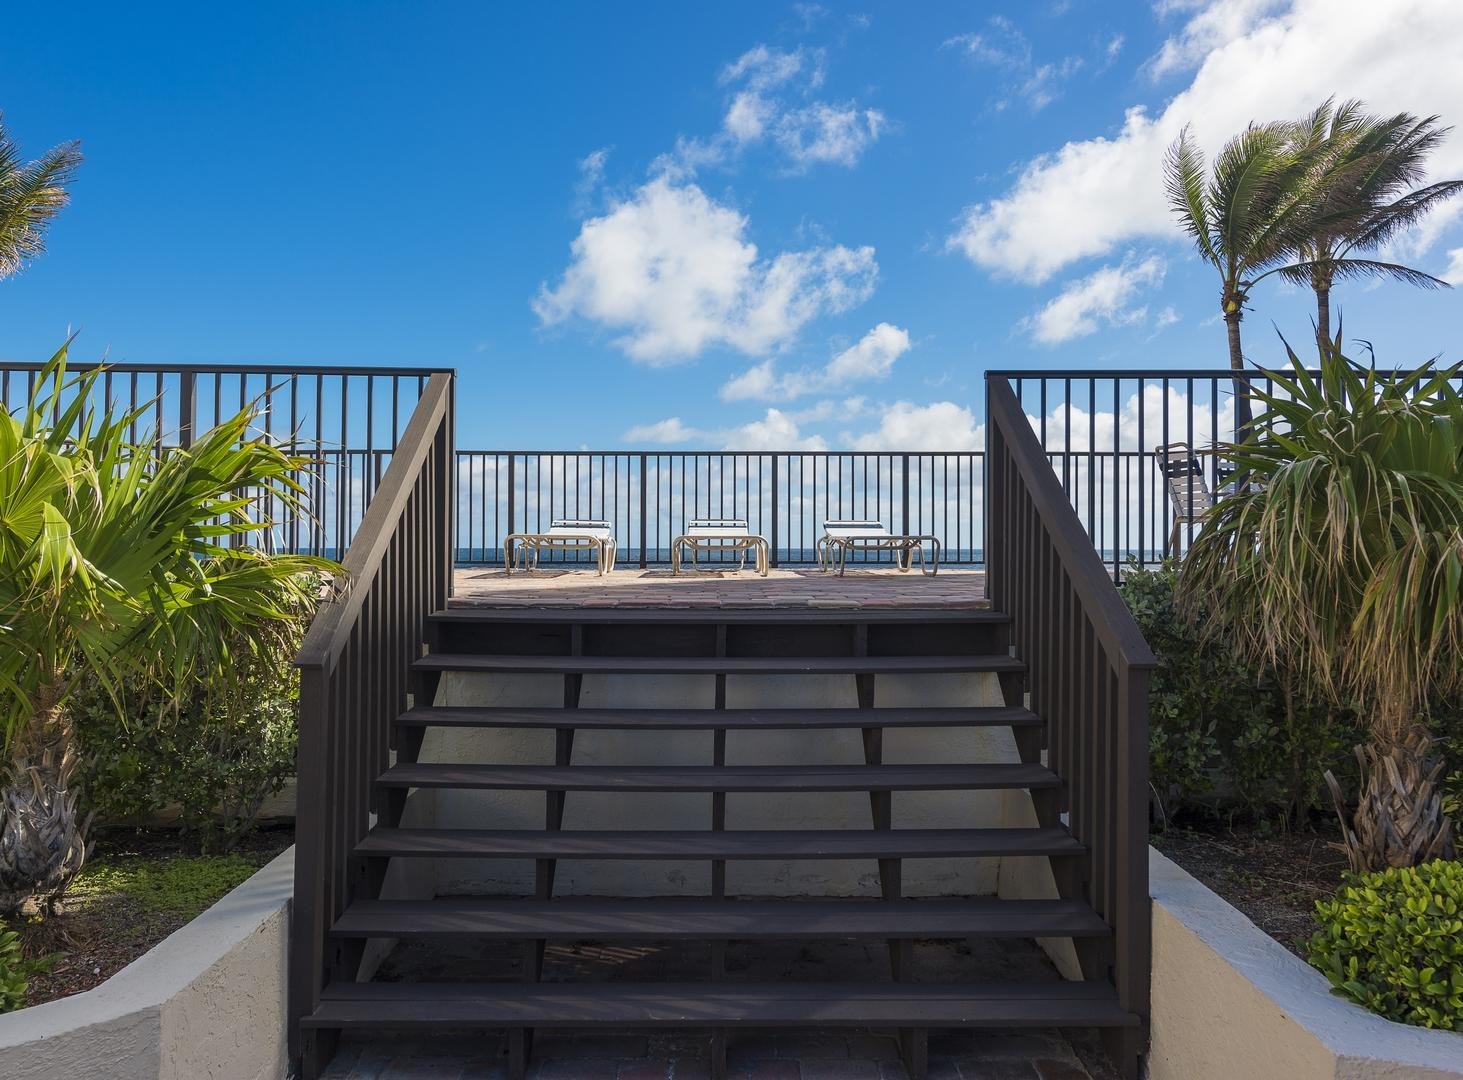 TOWNHOUSES OF HIGHLAND BEACH  COND  BLDG SOUTH UNIT 211-S